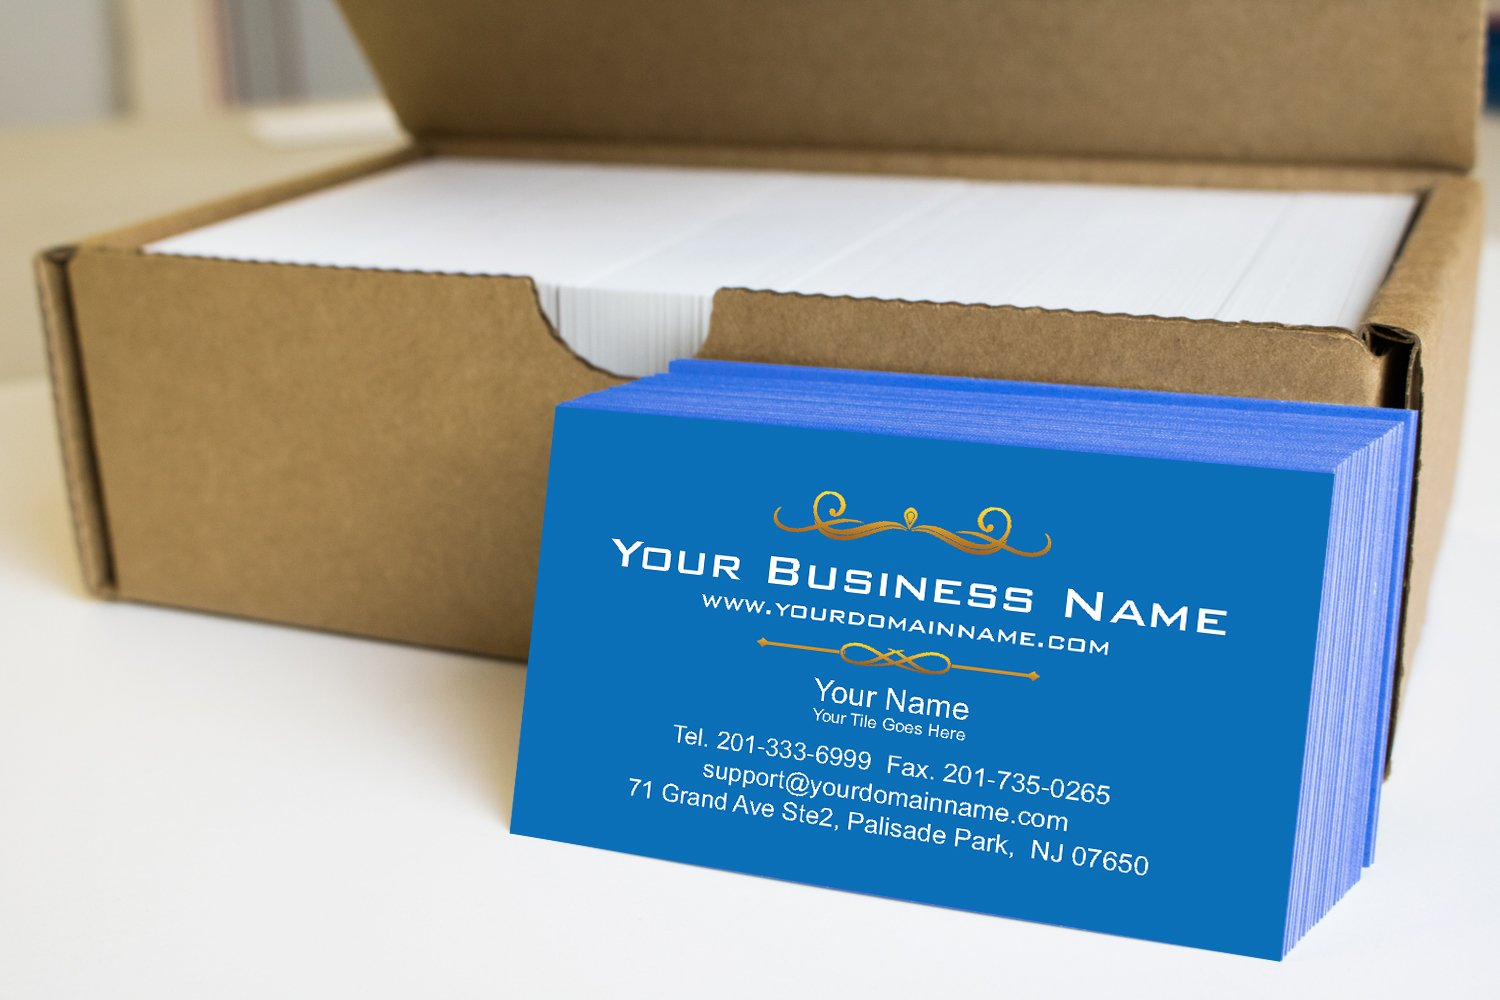 Simple Premium Business Cards 500 Full color - Blue front-White back (129 lbs. 350gsm-Thick paper)